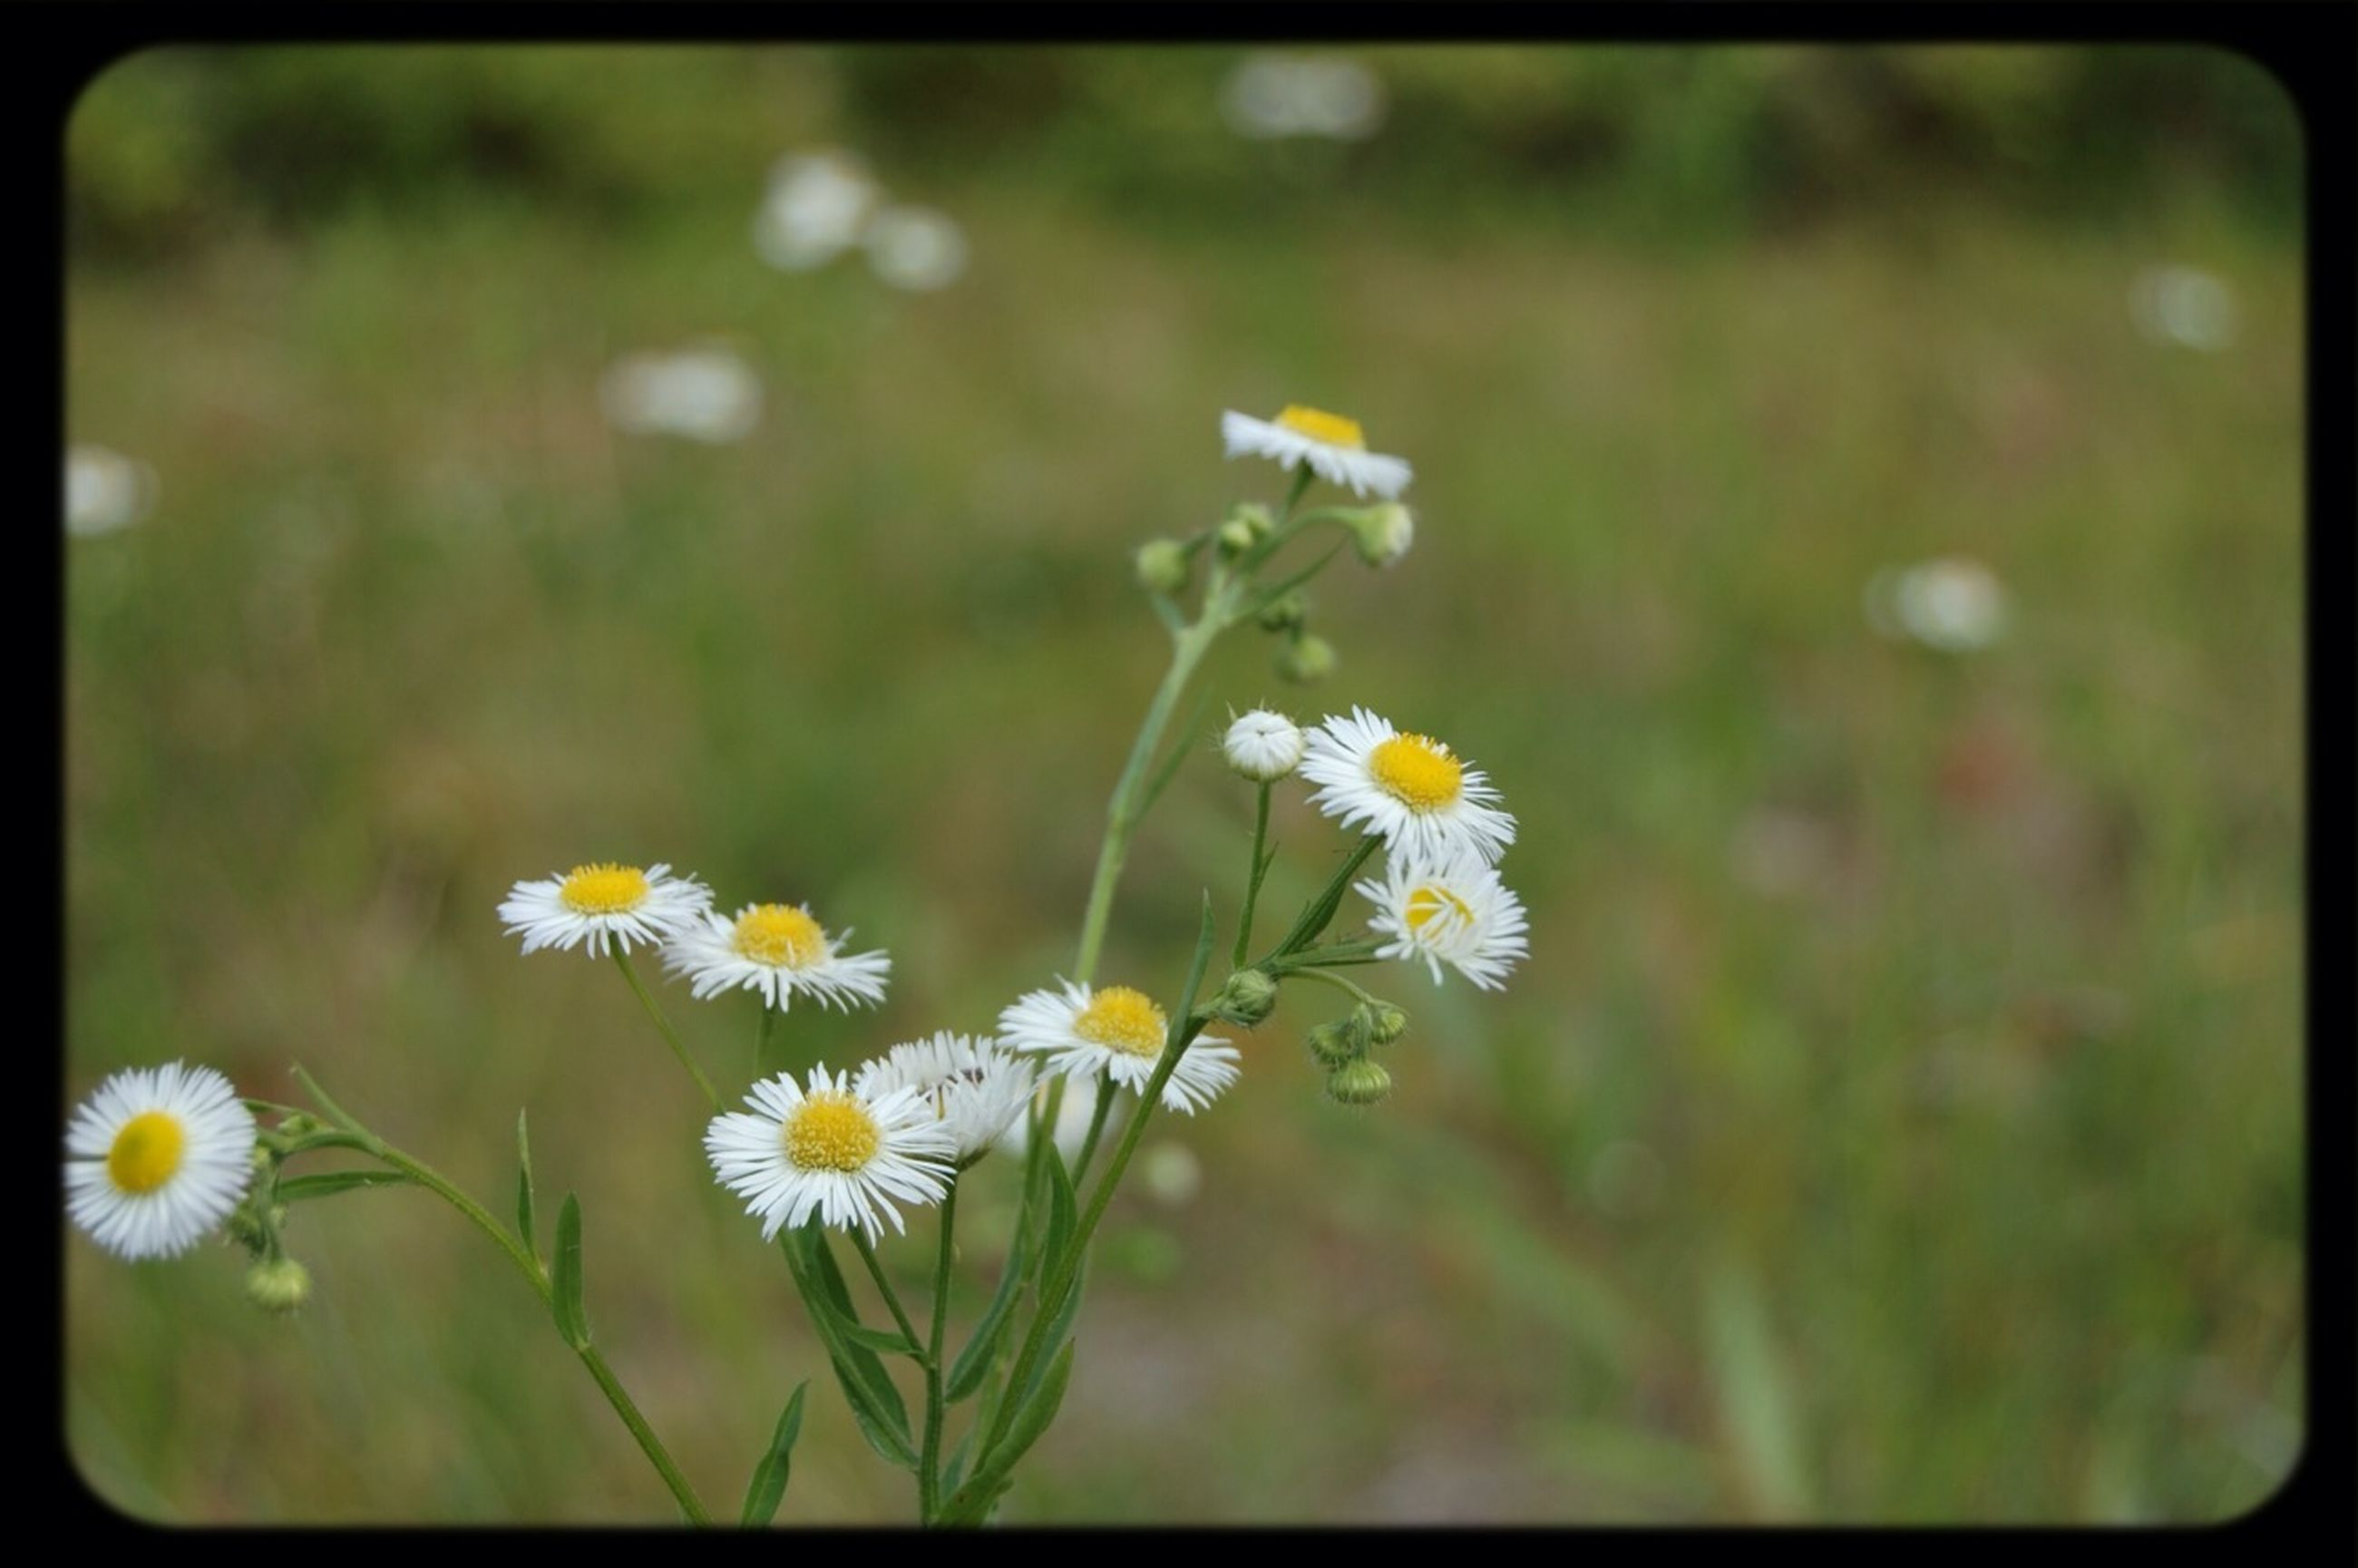 flower, freshness, fragility, petal, growth, flower head, beauty in nature, transfer print, blooming, white color, focus on foreground, nature, plant, yellow, daisy, field, close-up, auto post production filter, in bloom, stem